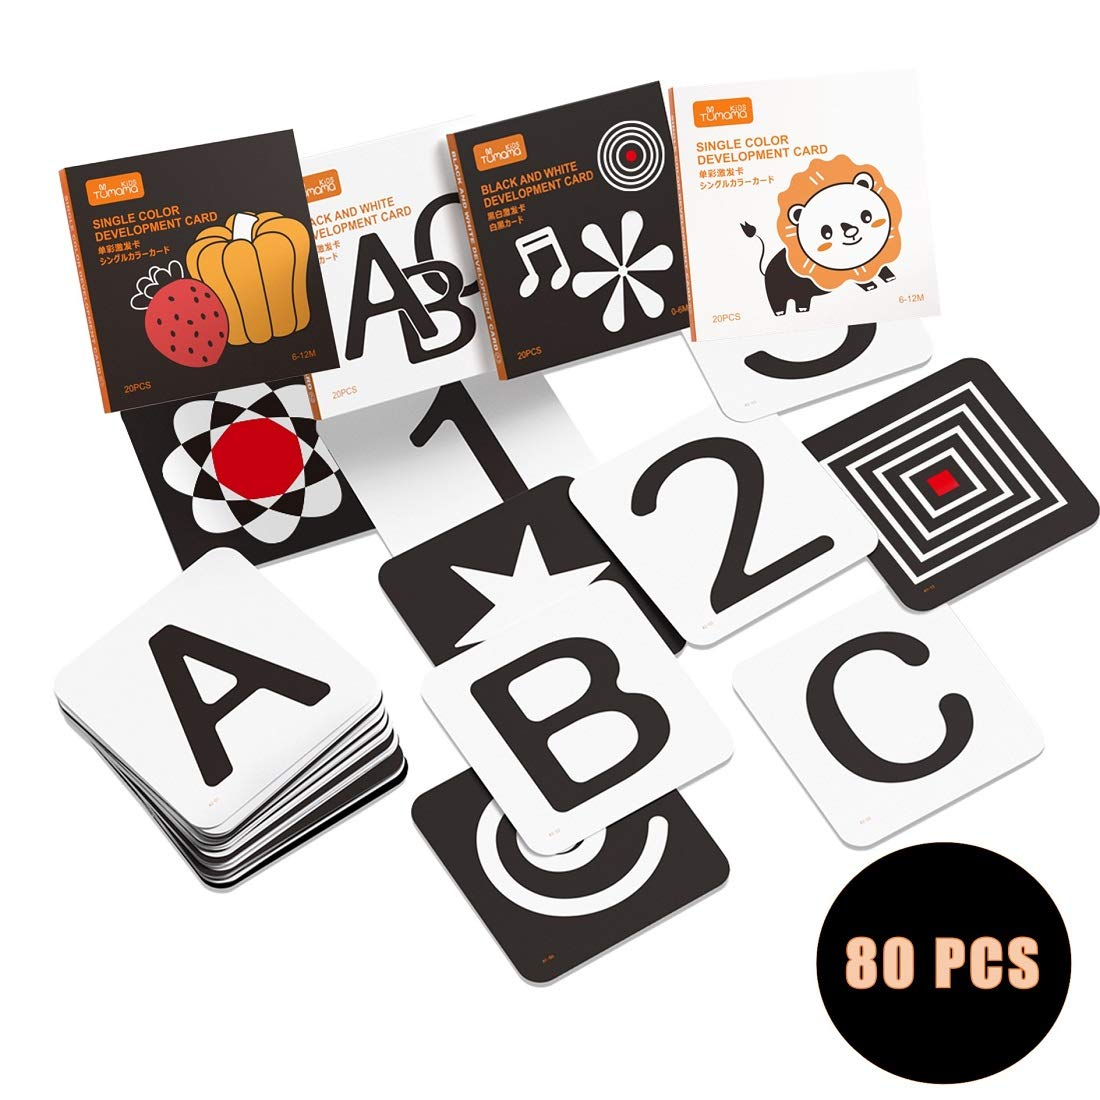 Upgraded 2020 TUMAMA Baby Black White Flash Cards, High Contrast Visual Stimulation Learning Flashcards, Learning Alphabet Shapes Color Cards for Toddlers, Baby Toys Gift for 0 3 6 9 12 Months(80 Pcs)